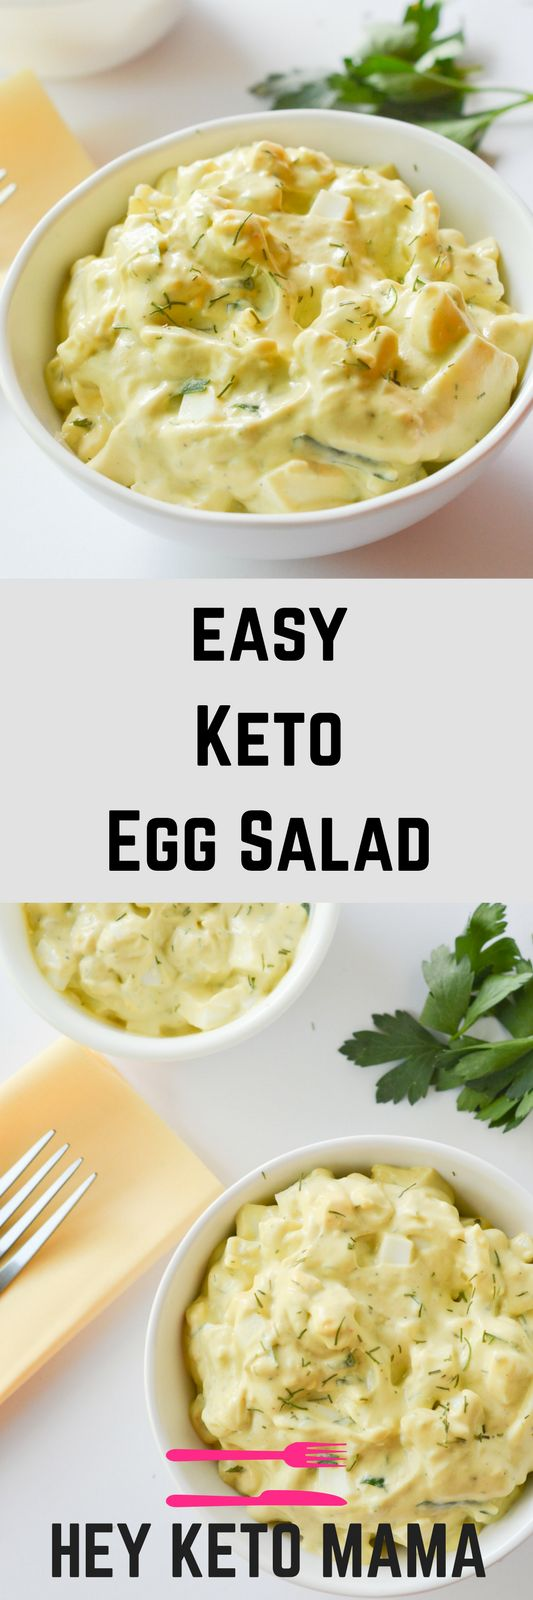 This easy keto egg salad is a quick and healthy low carb lunch with plenty of protein and ...